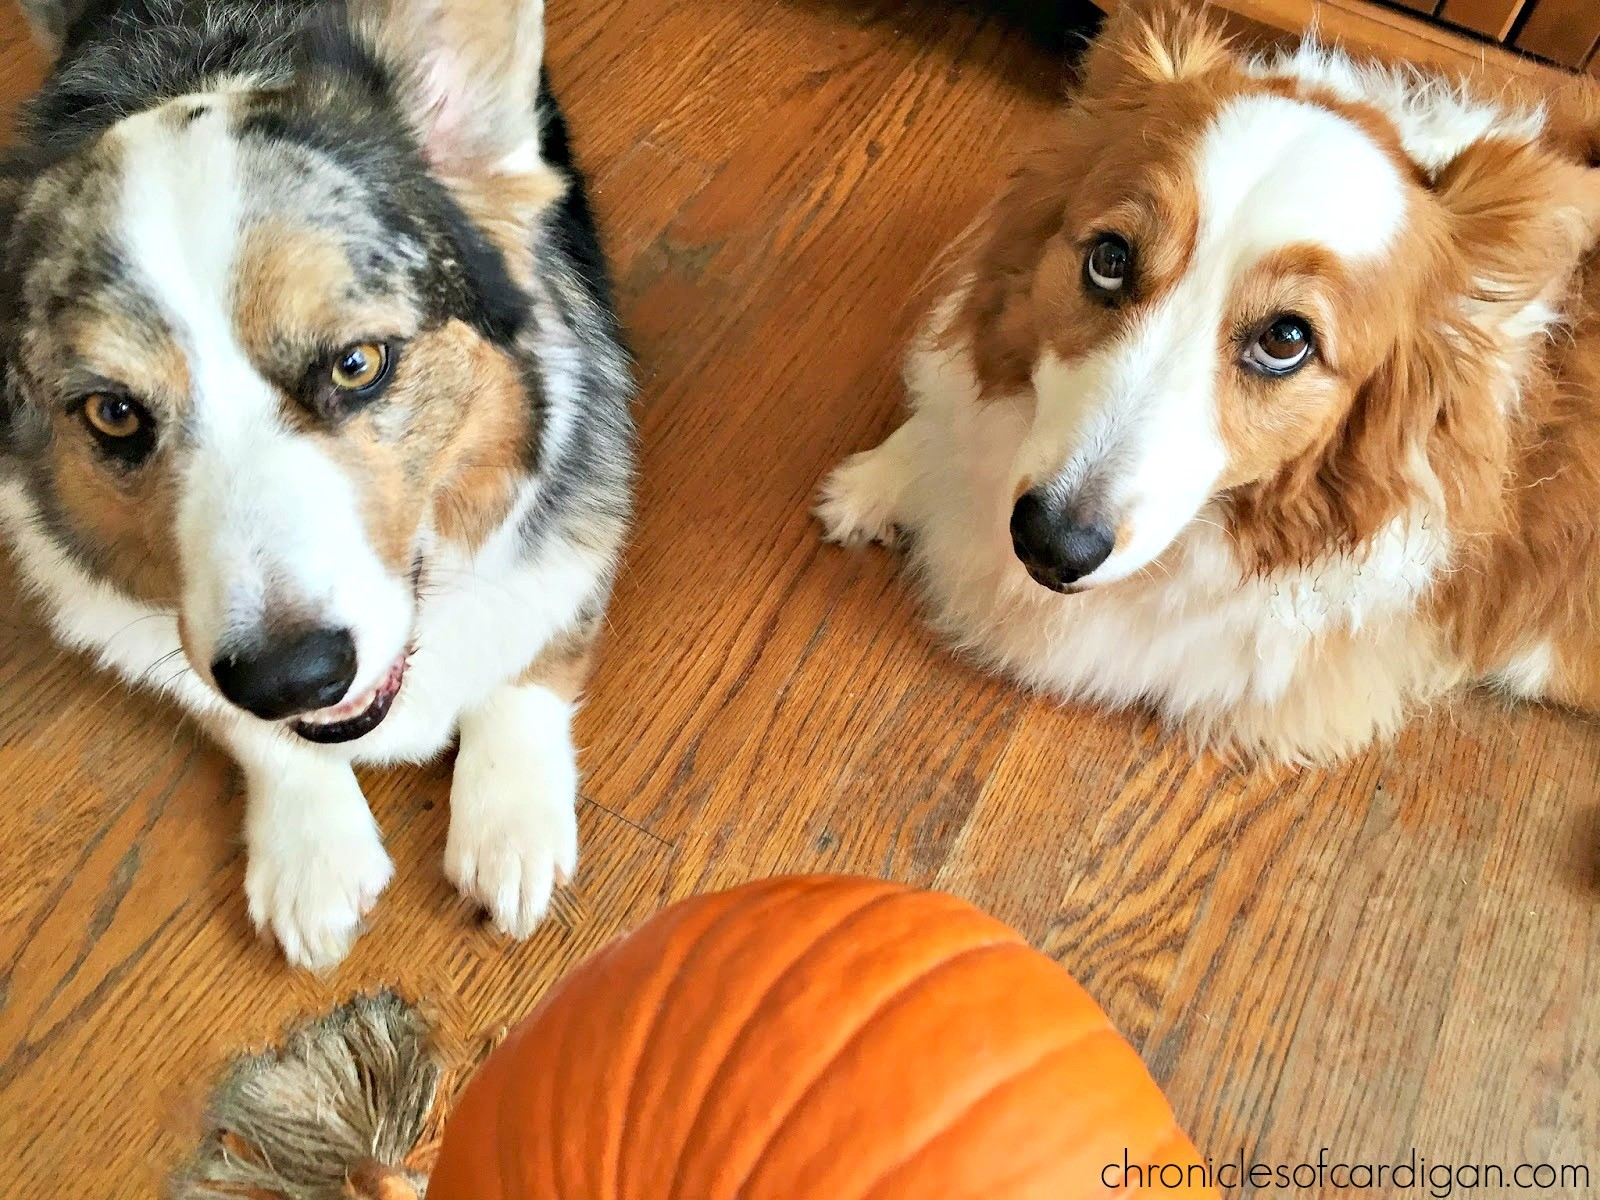 10 Tips for Bringing a New Dog Into My Household